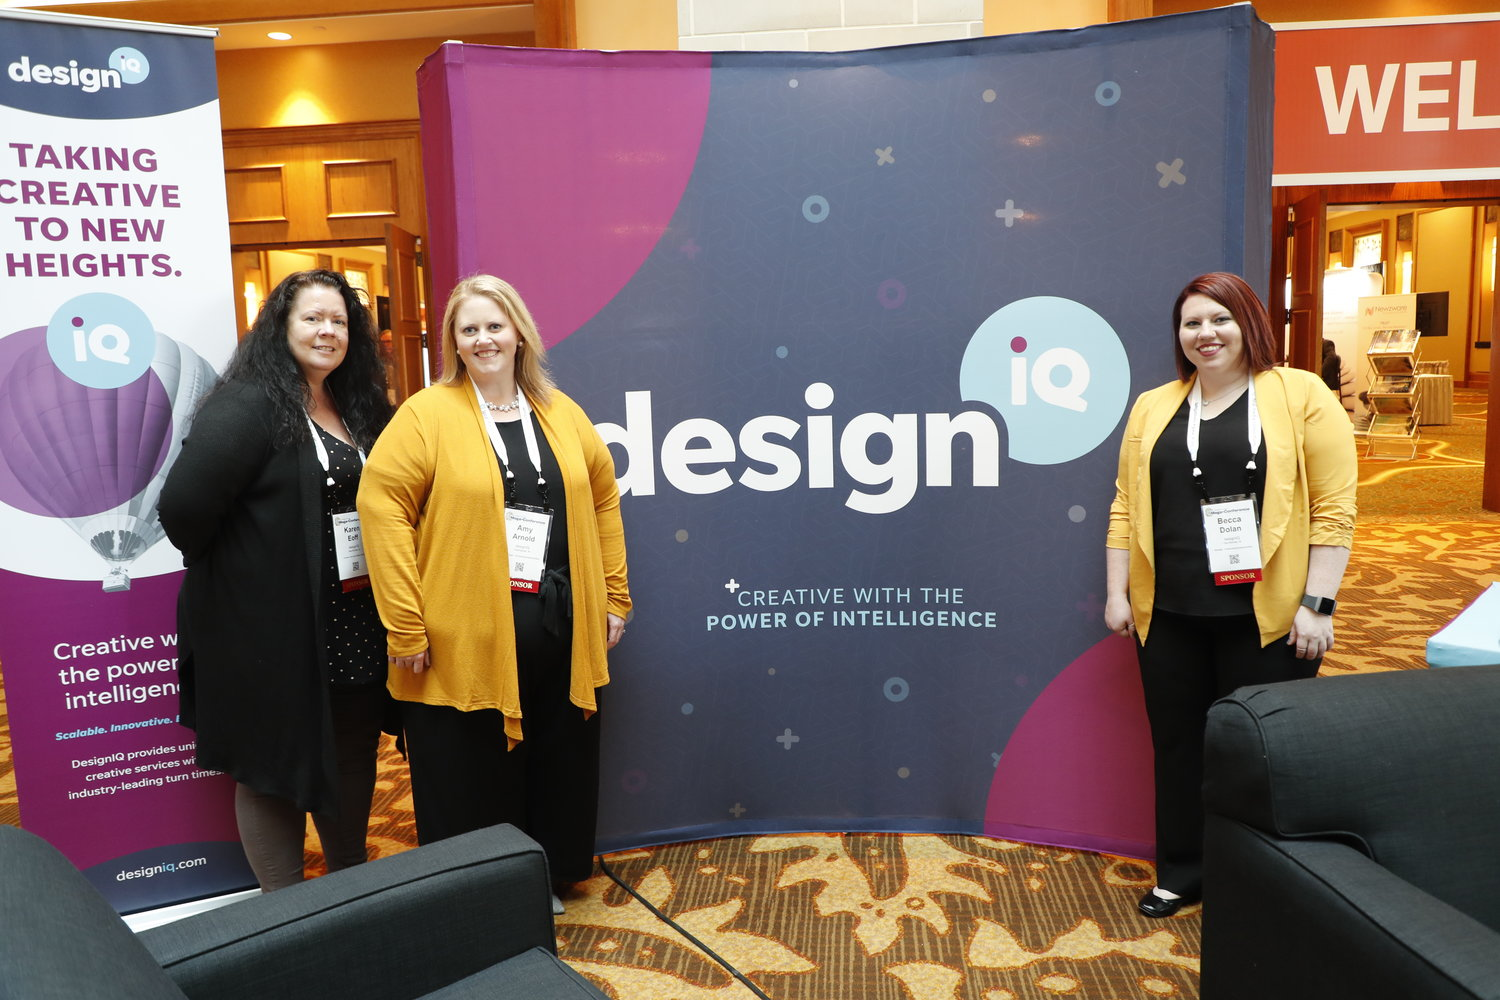 Monday photos of the 2020 Mega Conference at the Omni Hotel in Fort Worth, Texas, Feb. 17, 2020. (Photo by Bob Booth)